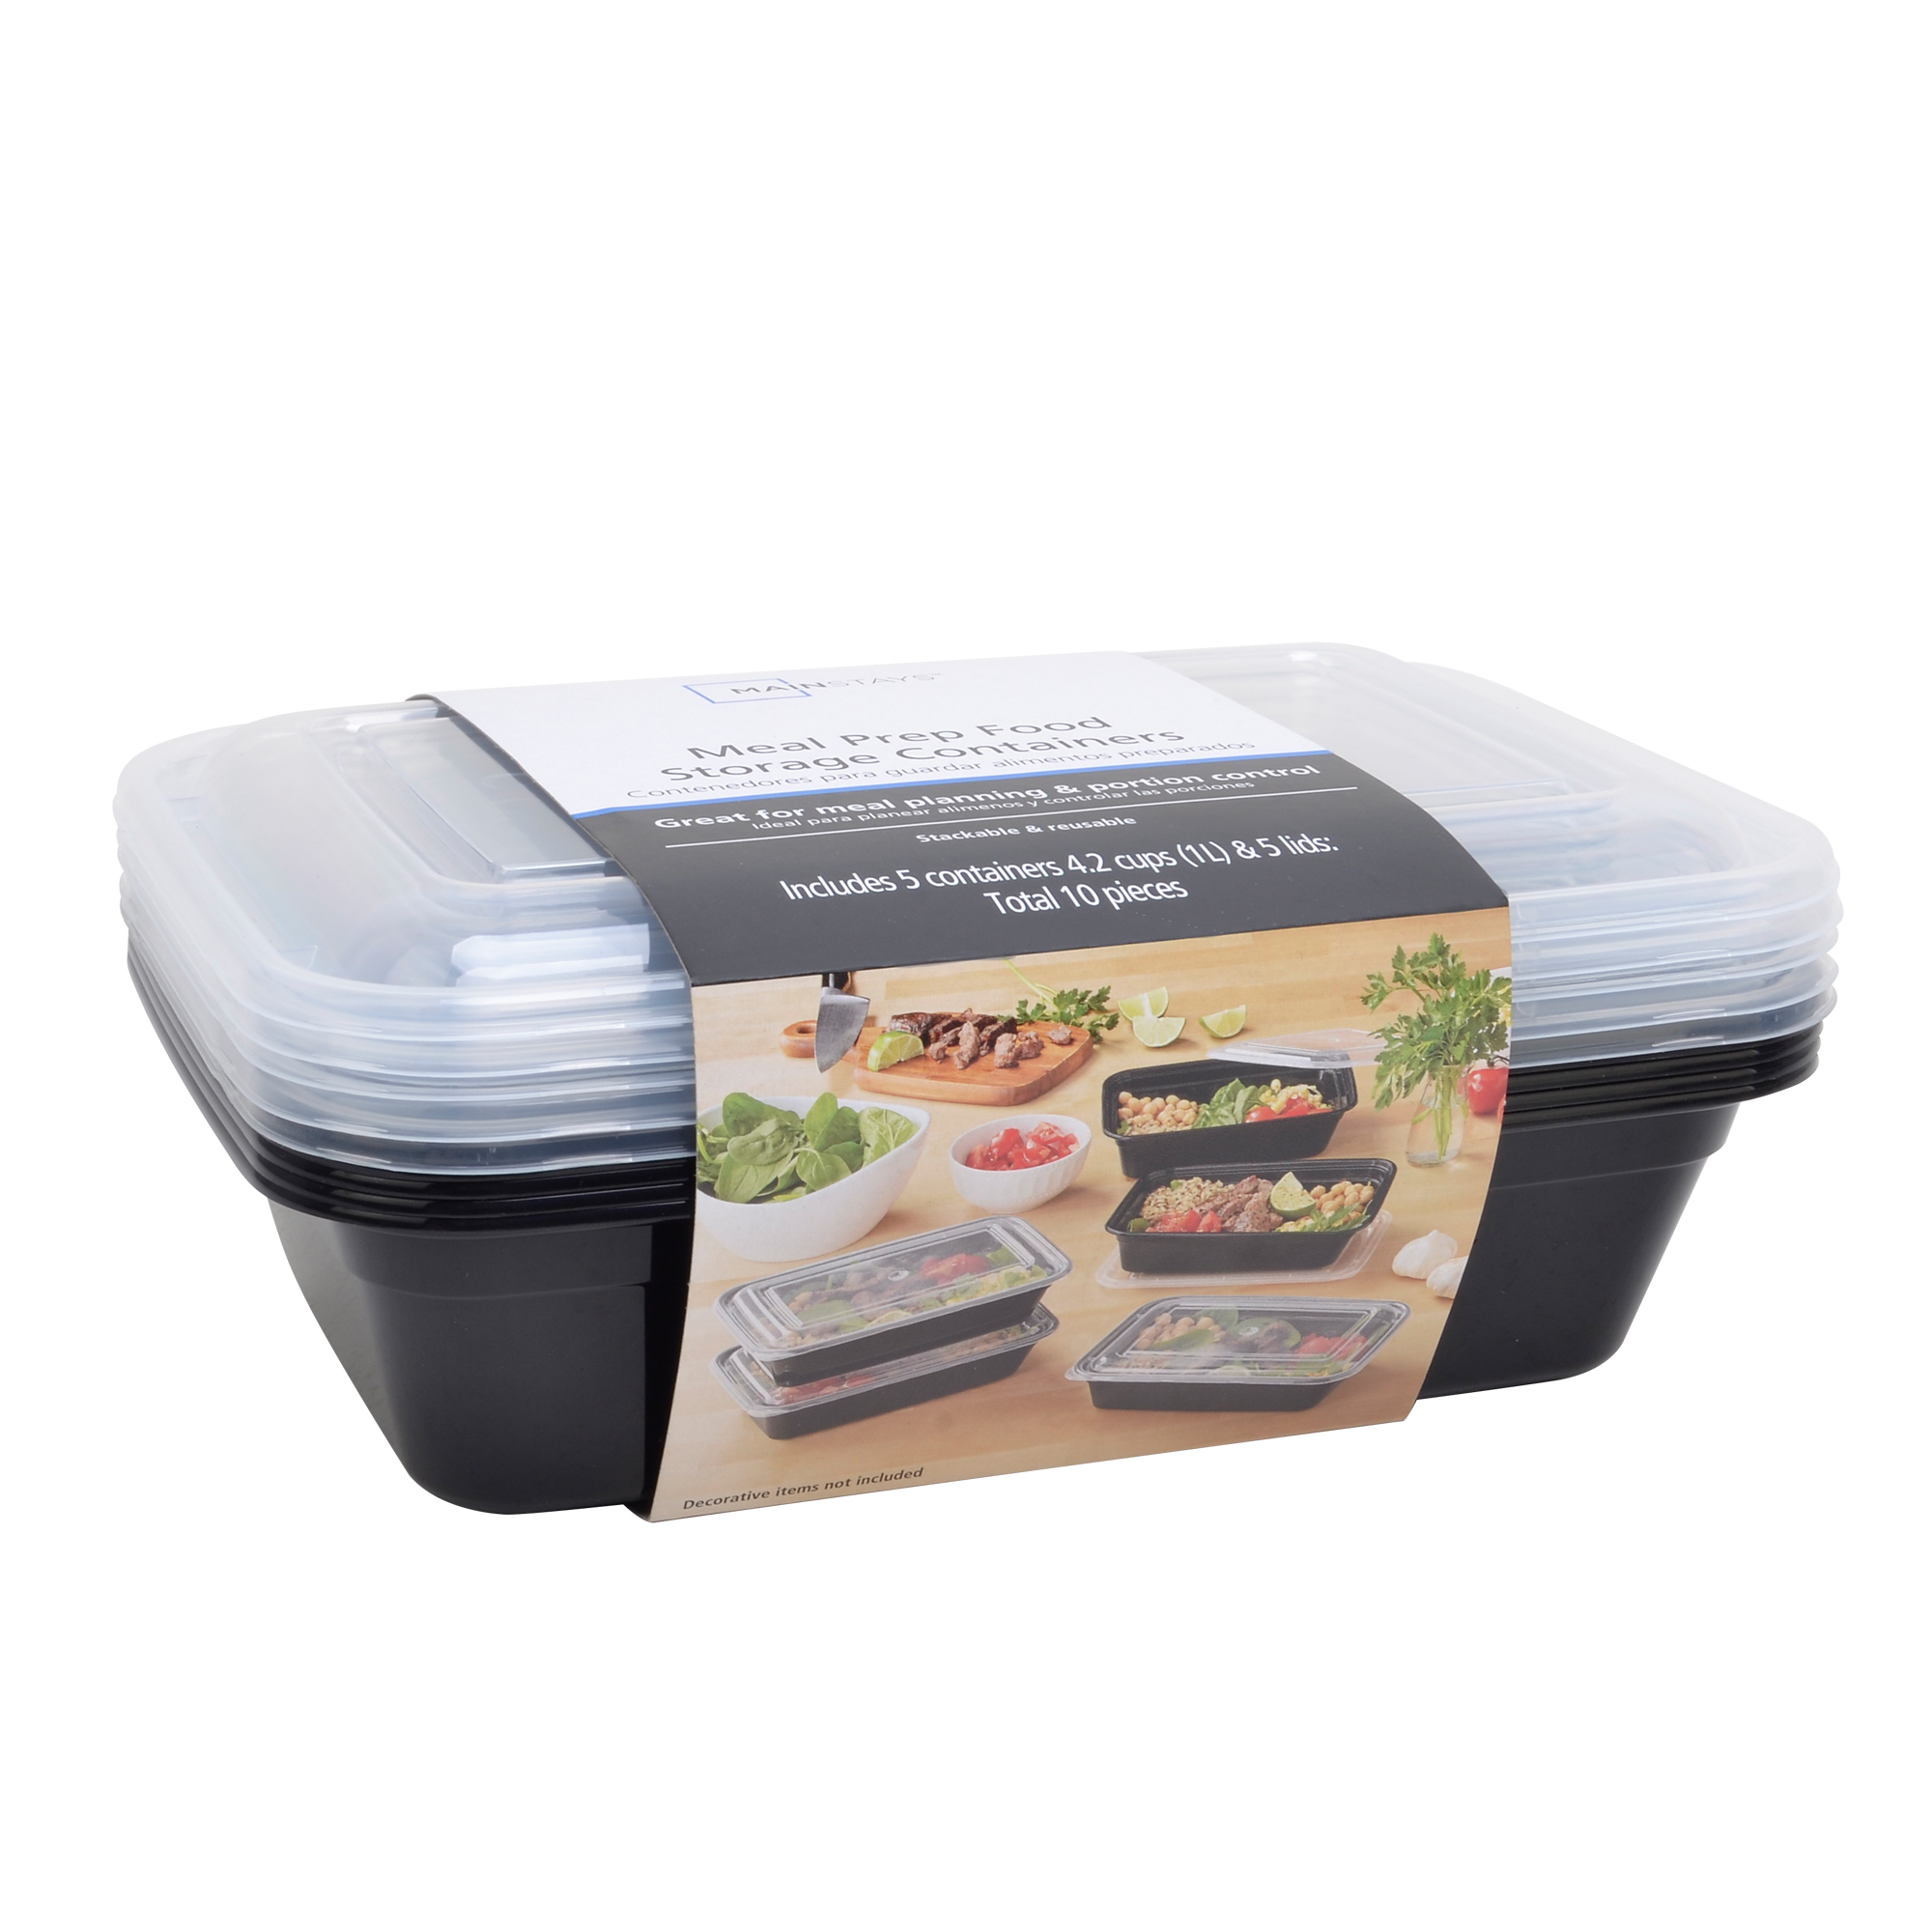 Mainstays Meal Prep Containers, 10 Piece